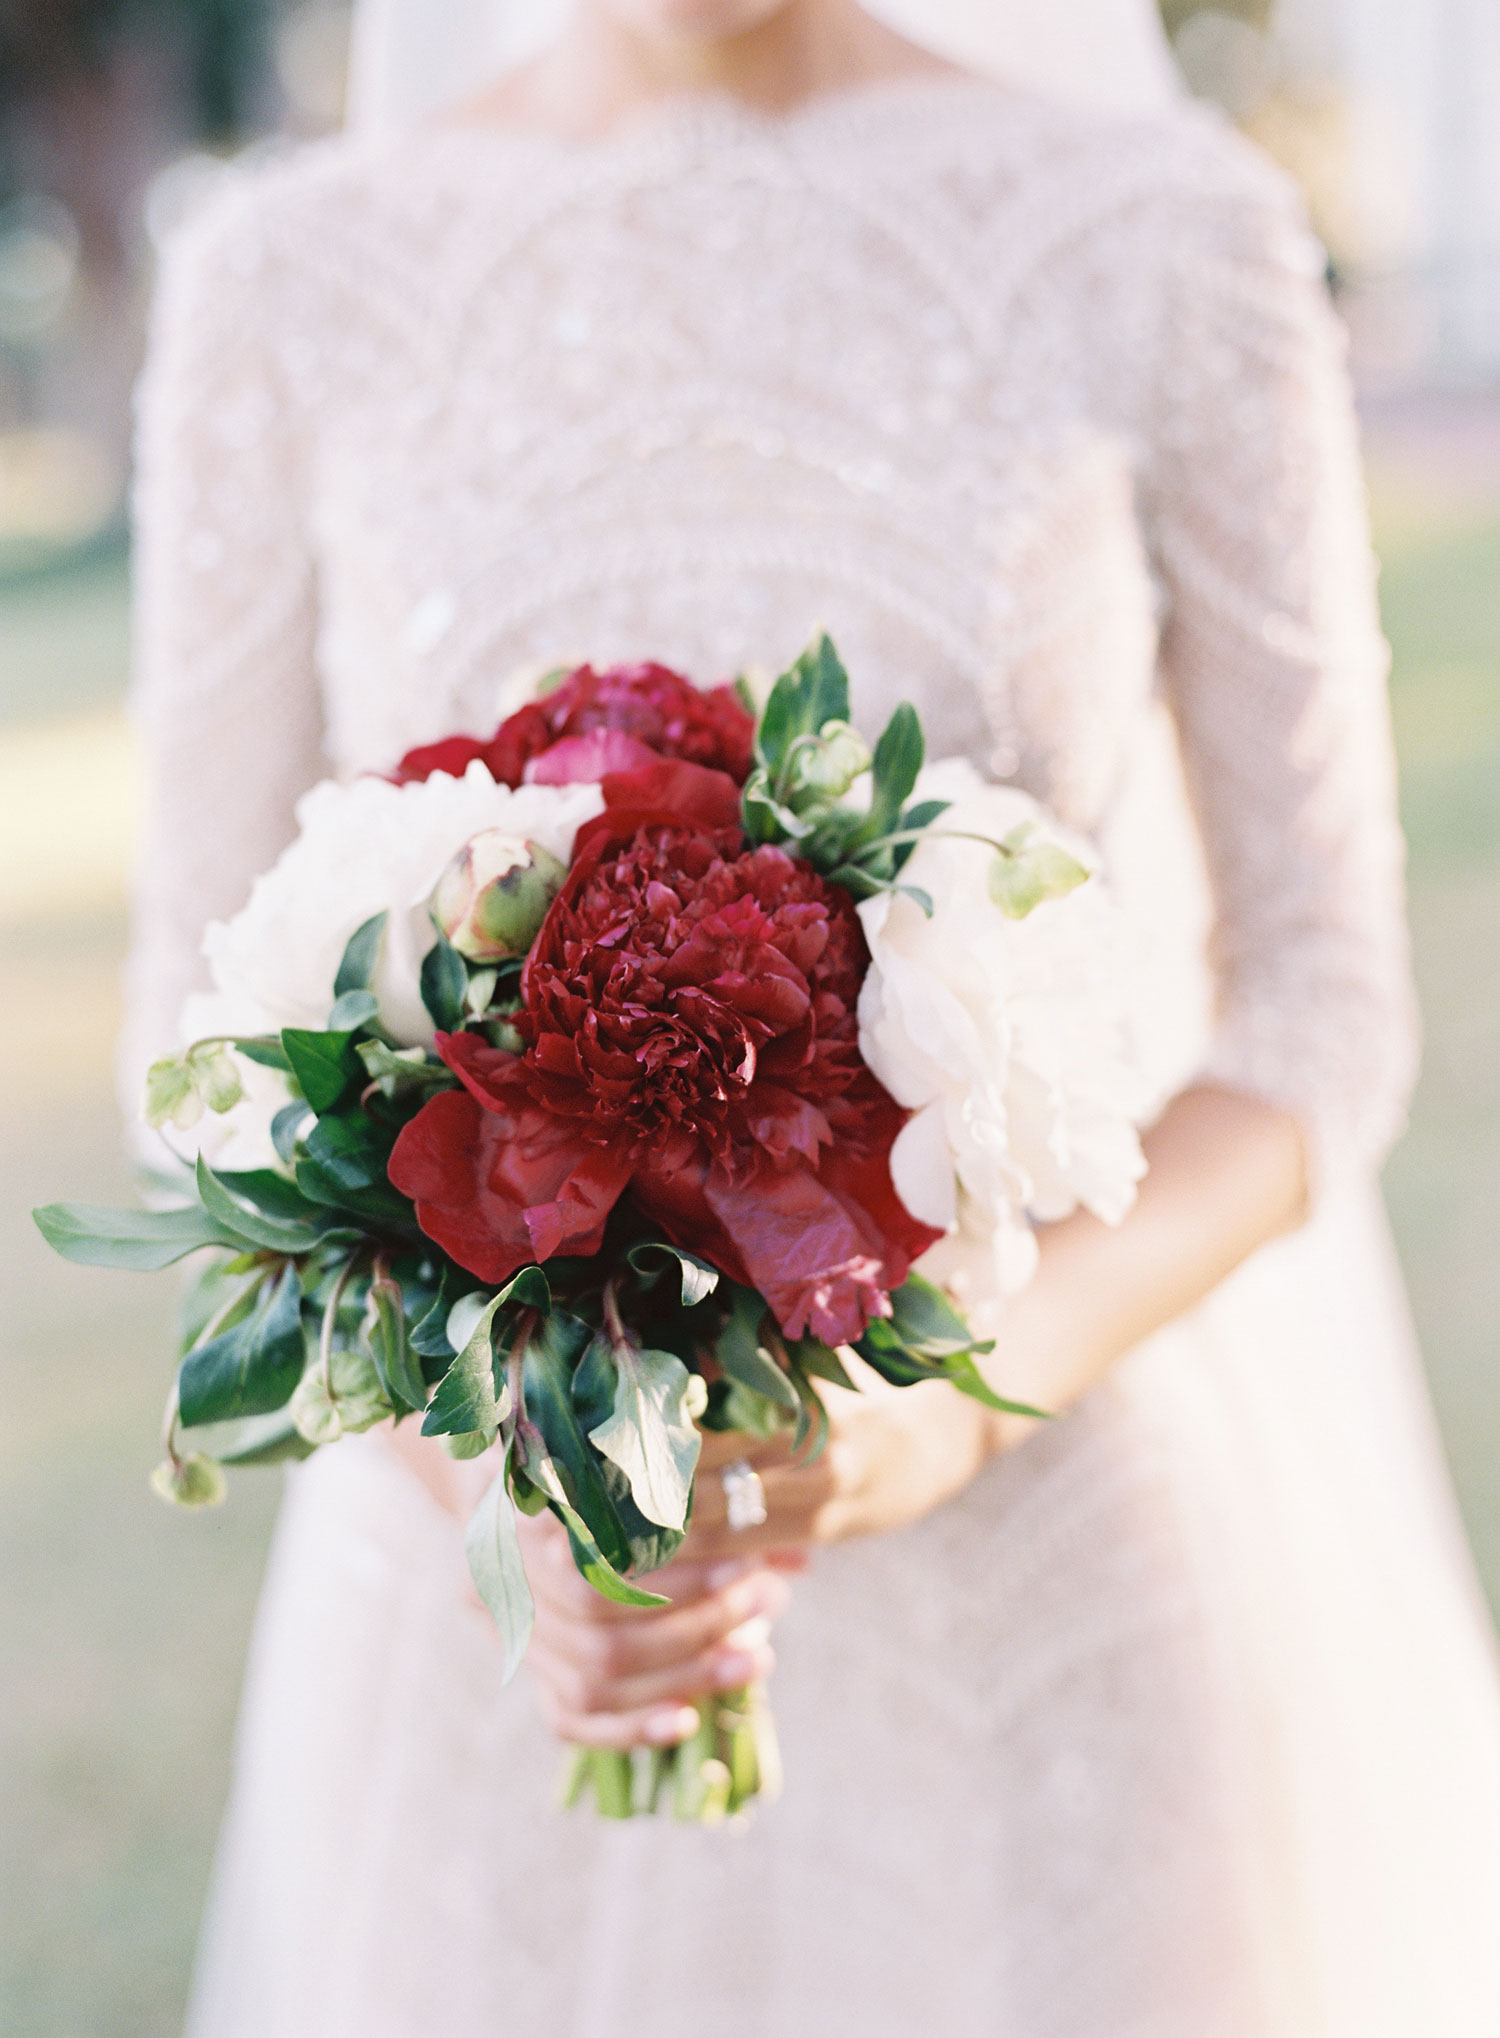 bride holding red wedding bouquet fourth of july wedding ideas